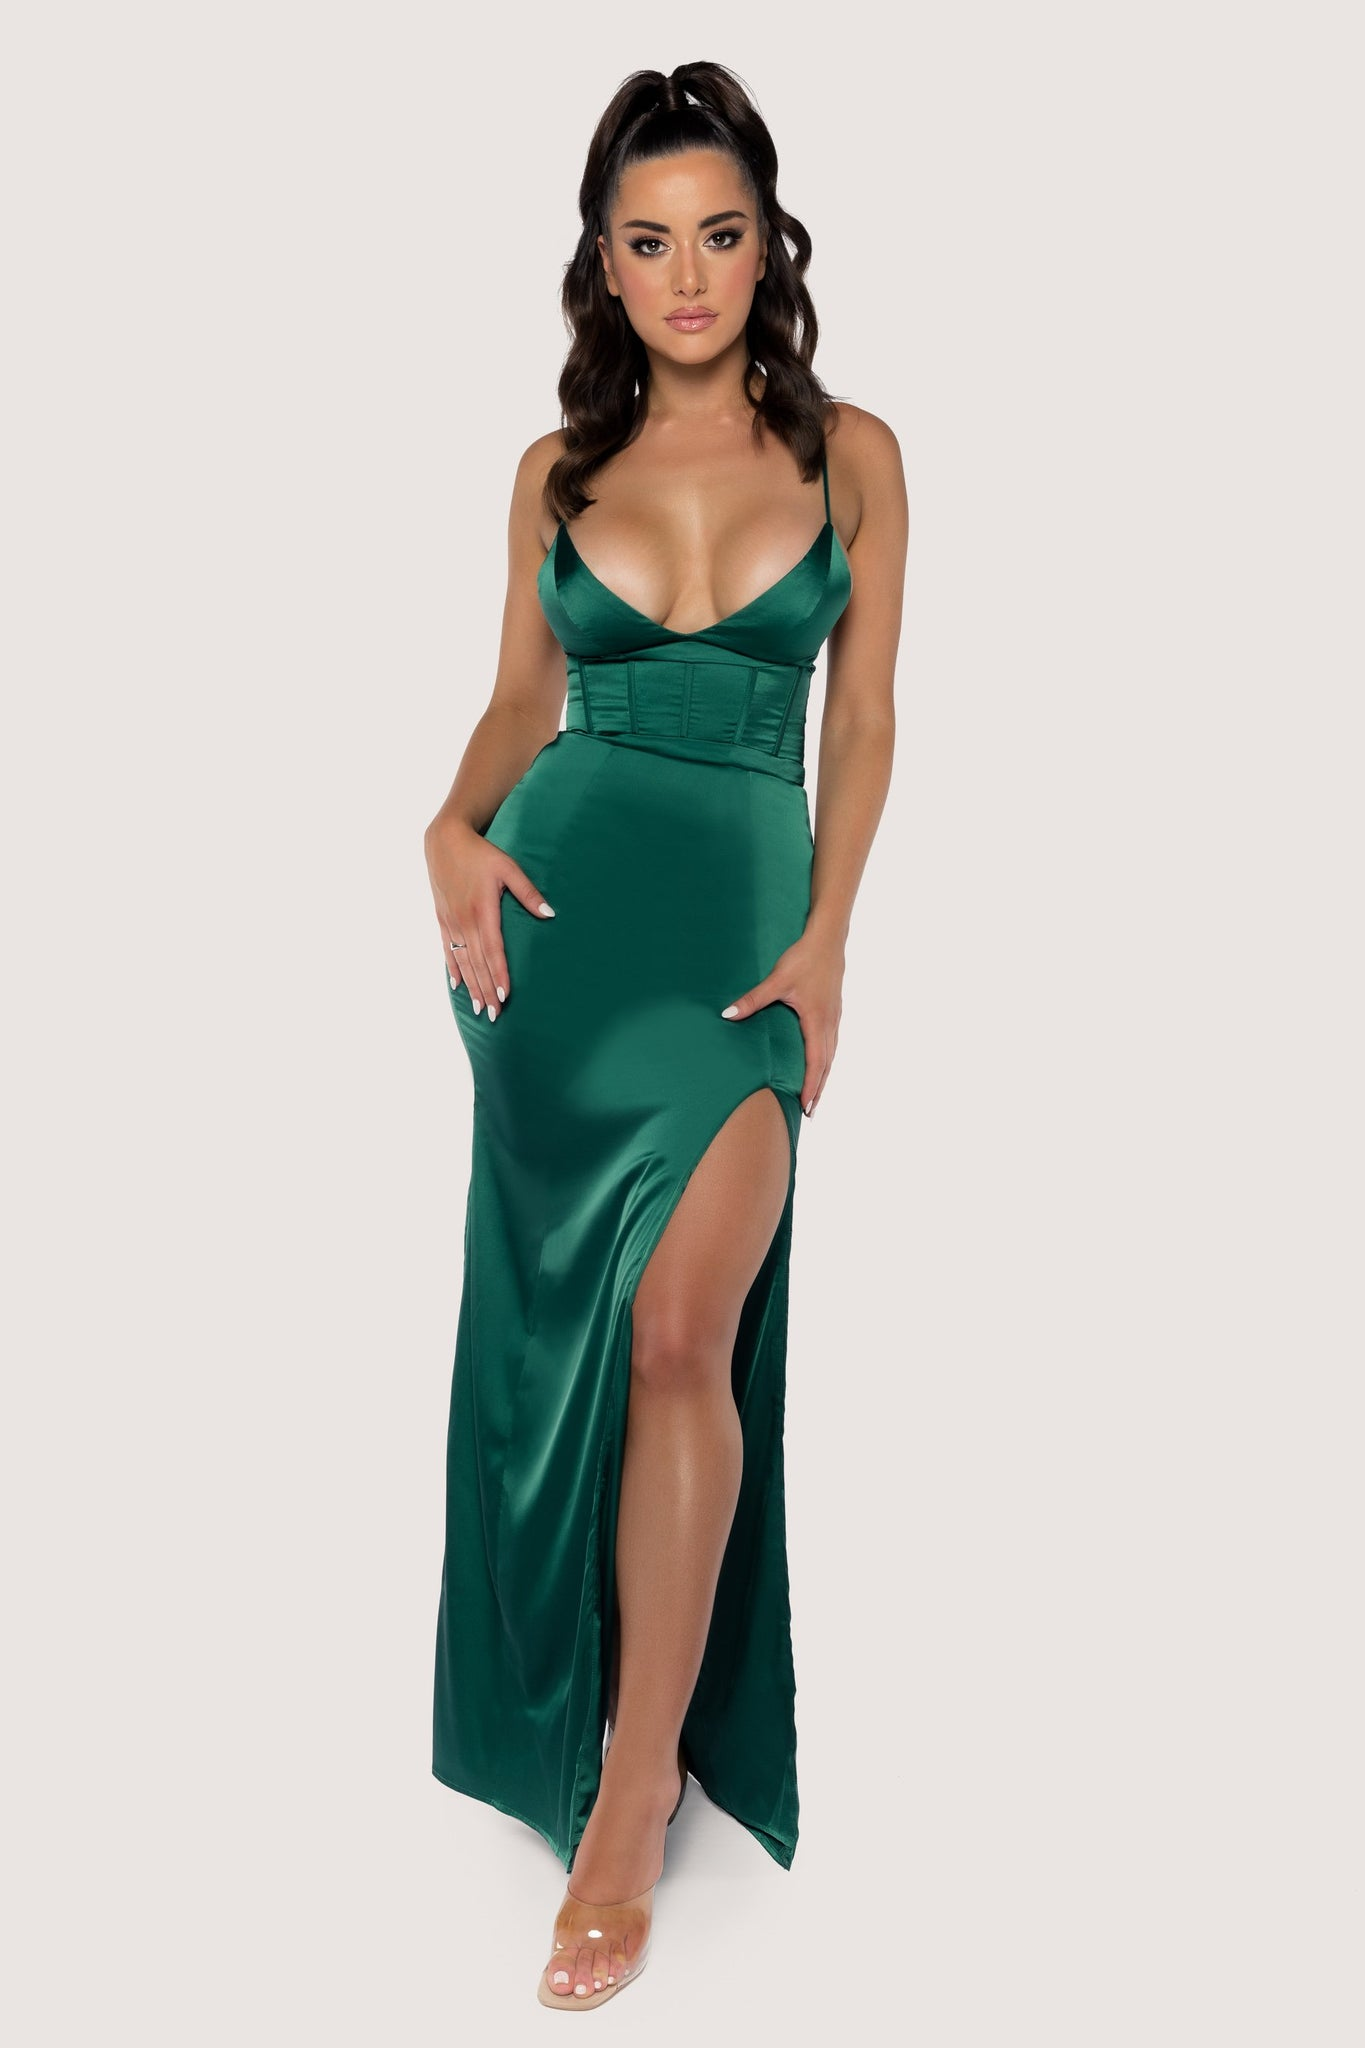 Dania Thin Strap Plunge Maxi Dress - Emerald - MESHKI